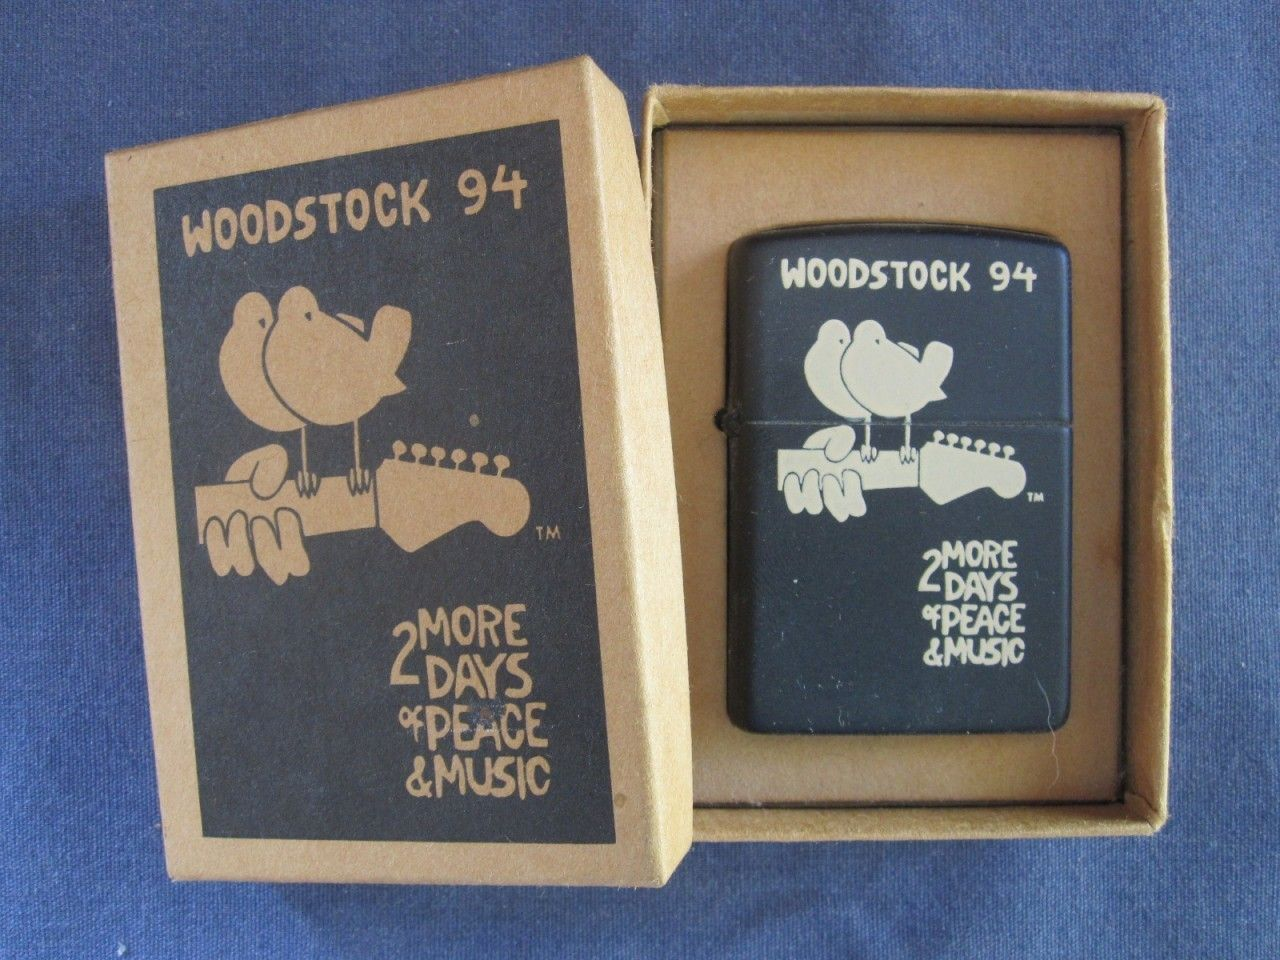 Zippo Lighter Woodstock 94 2 More Days Of Peace Music Rare